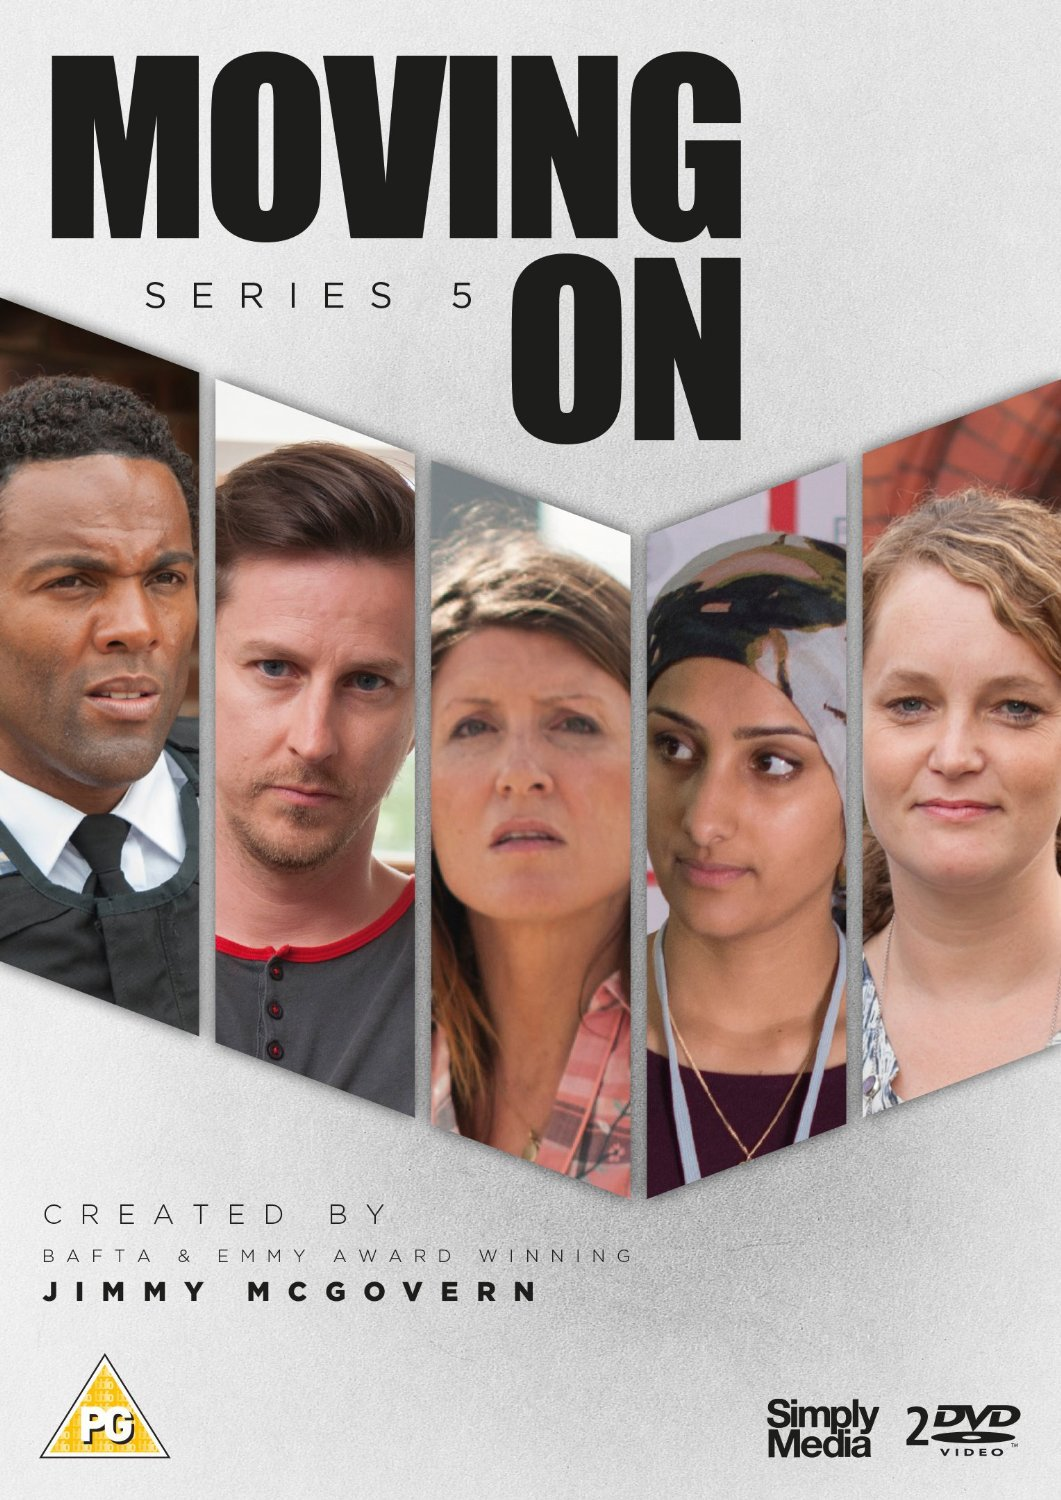 Moving On: Series 5